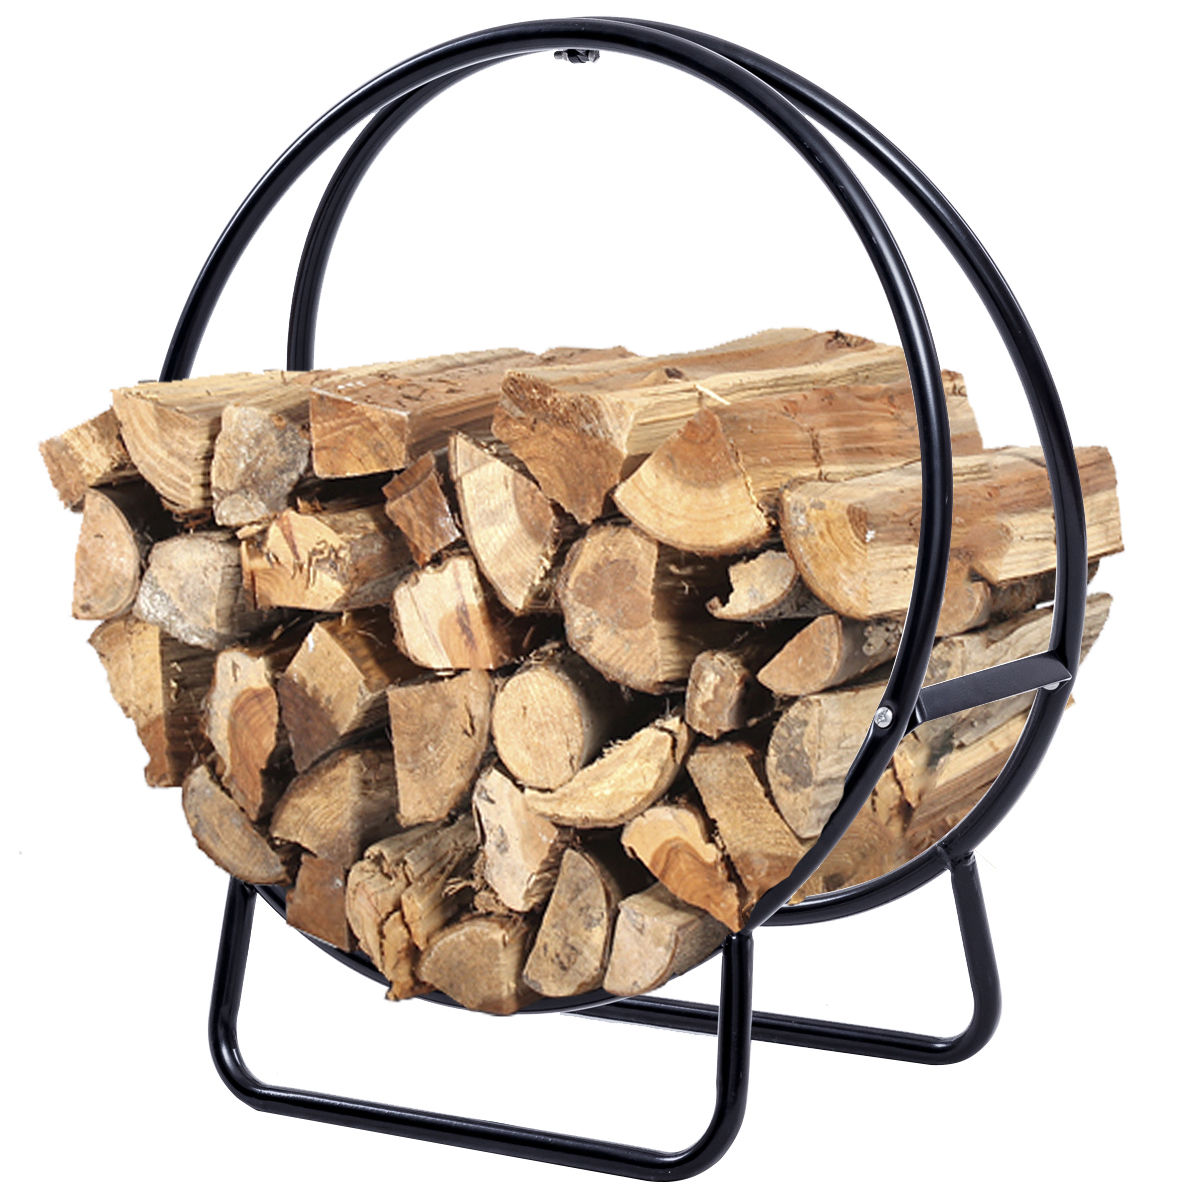 Costway 2 Feet Tubular Steel Log Hoop Firewood Storage Rack Holder Round Display